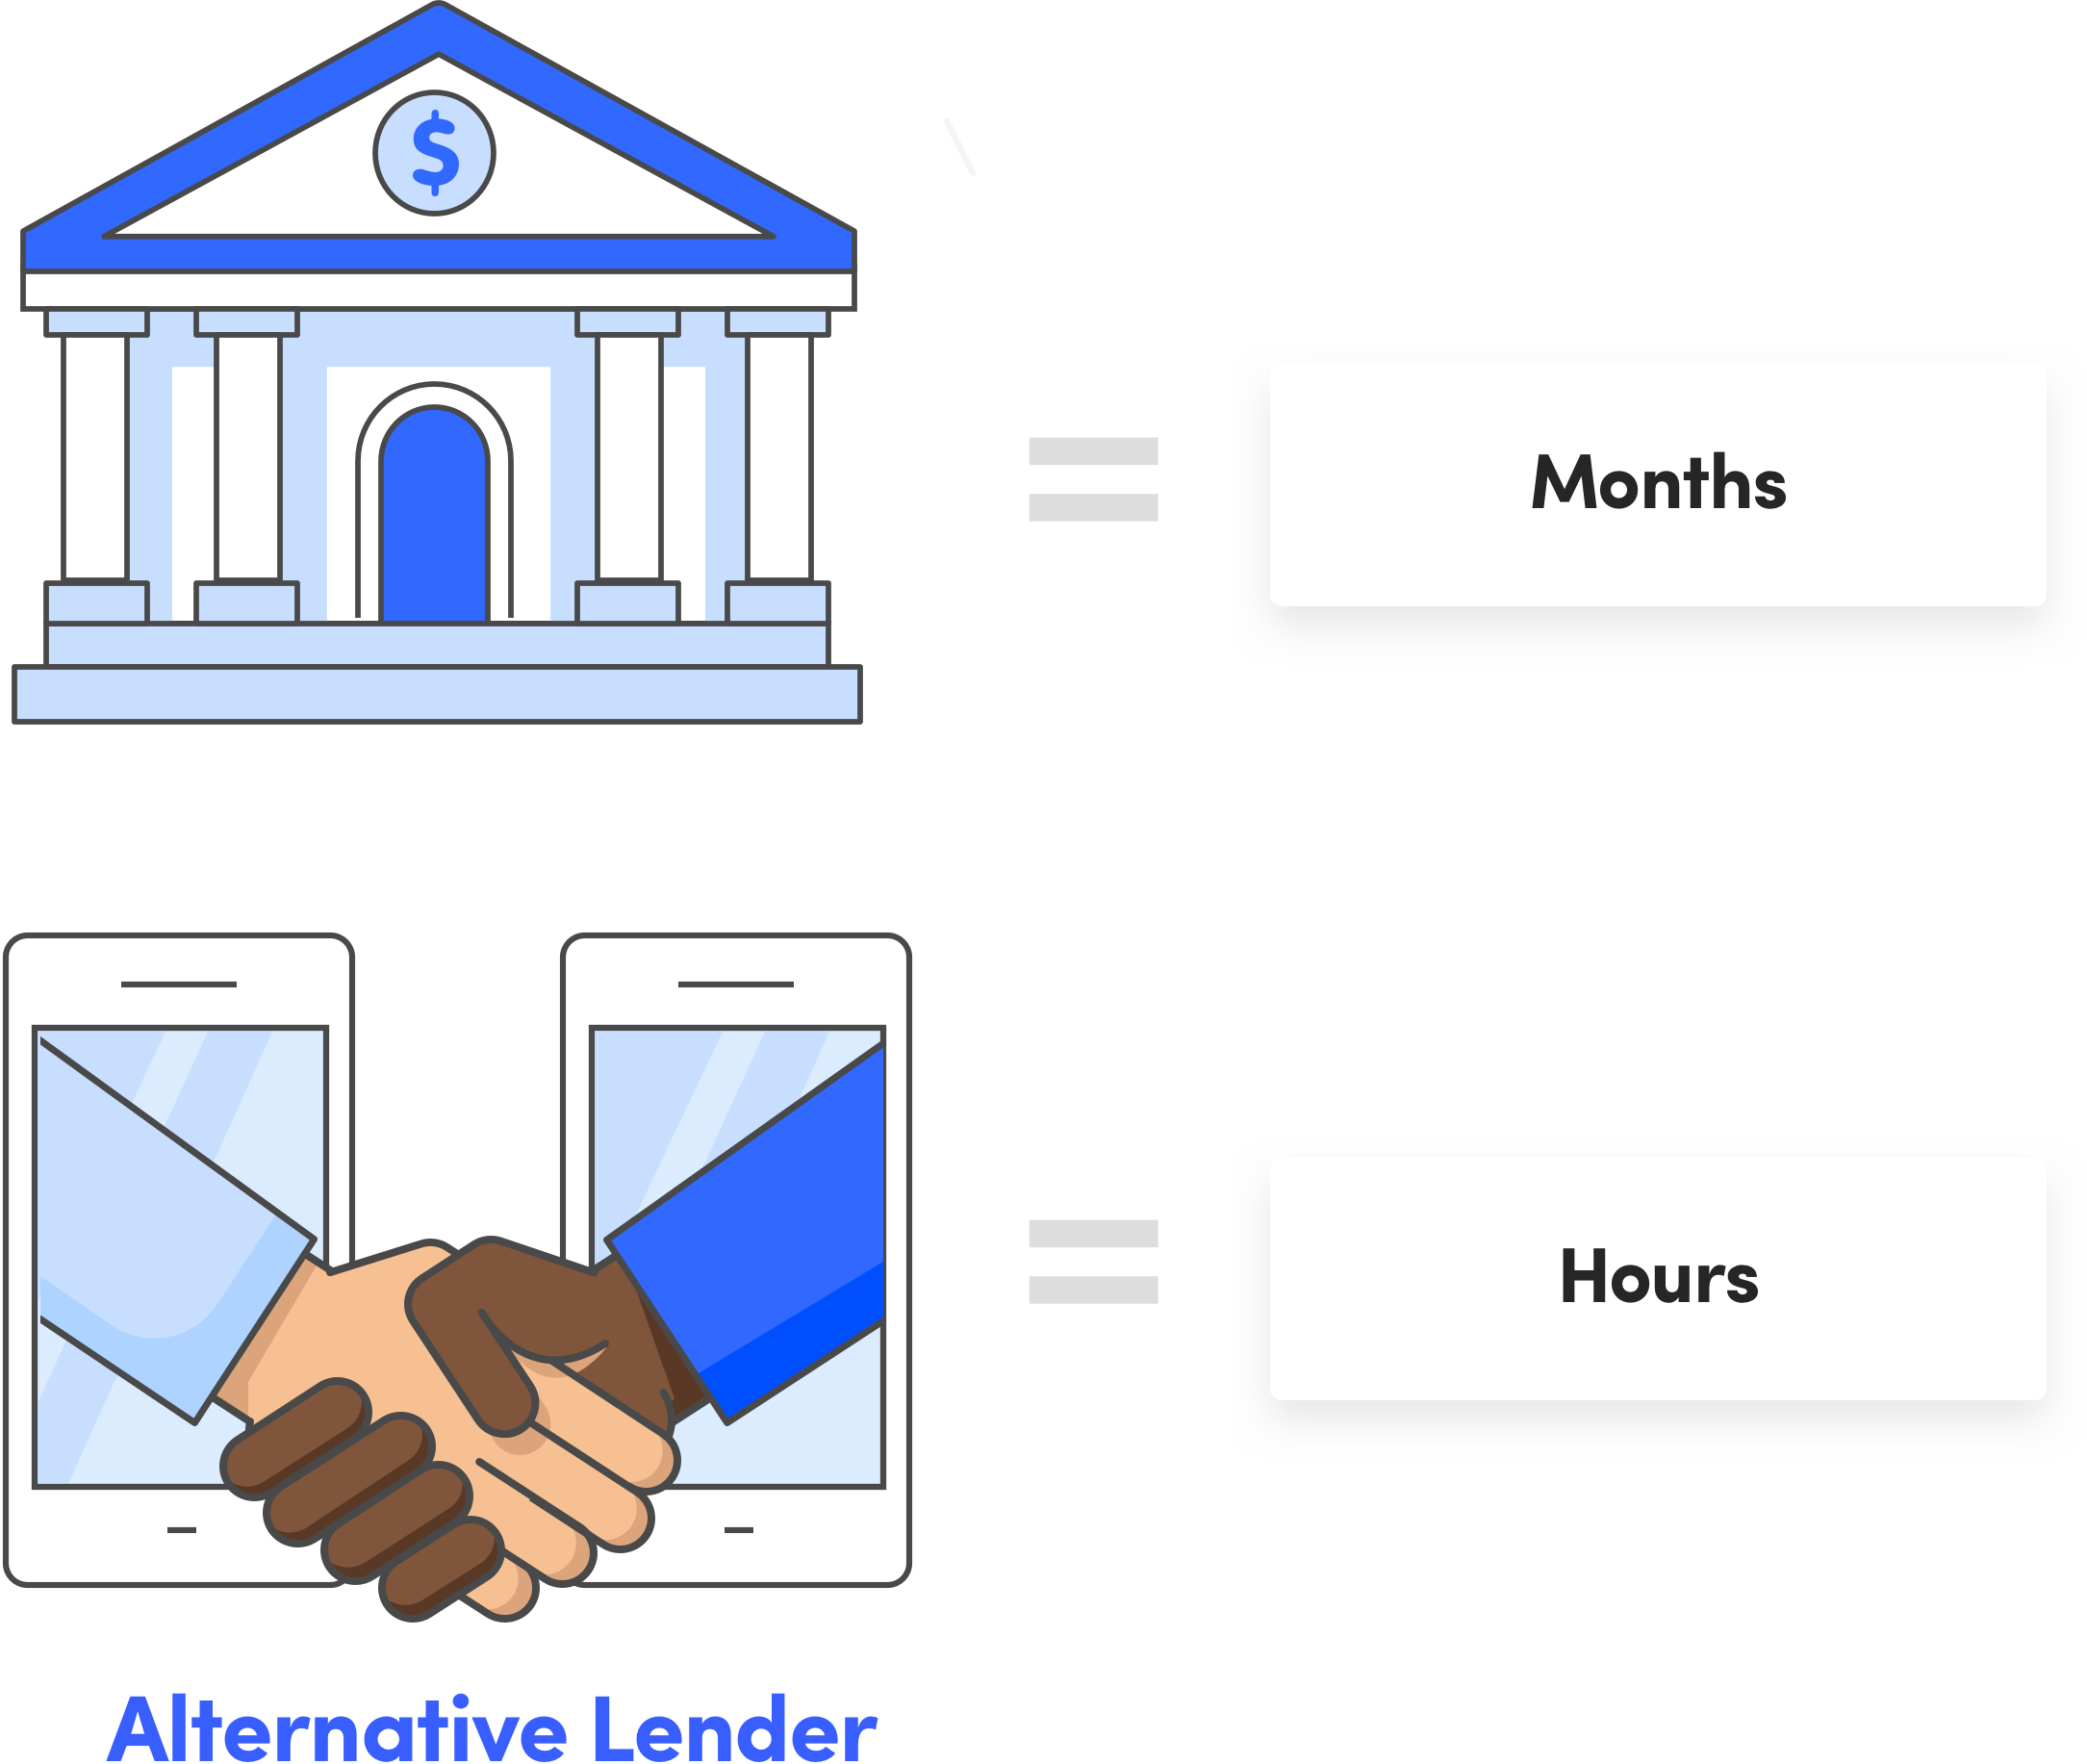 Bank vs Alternative Lender